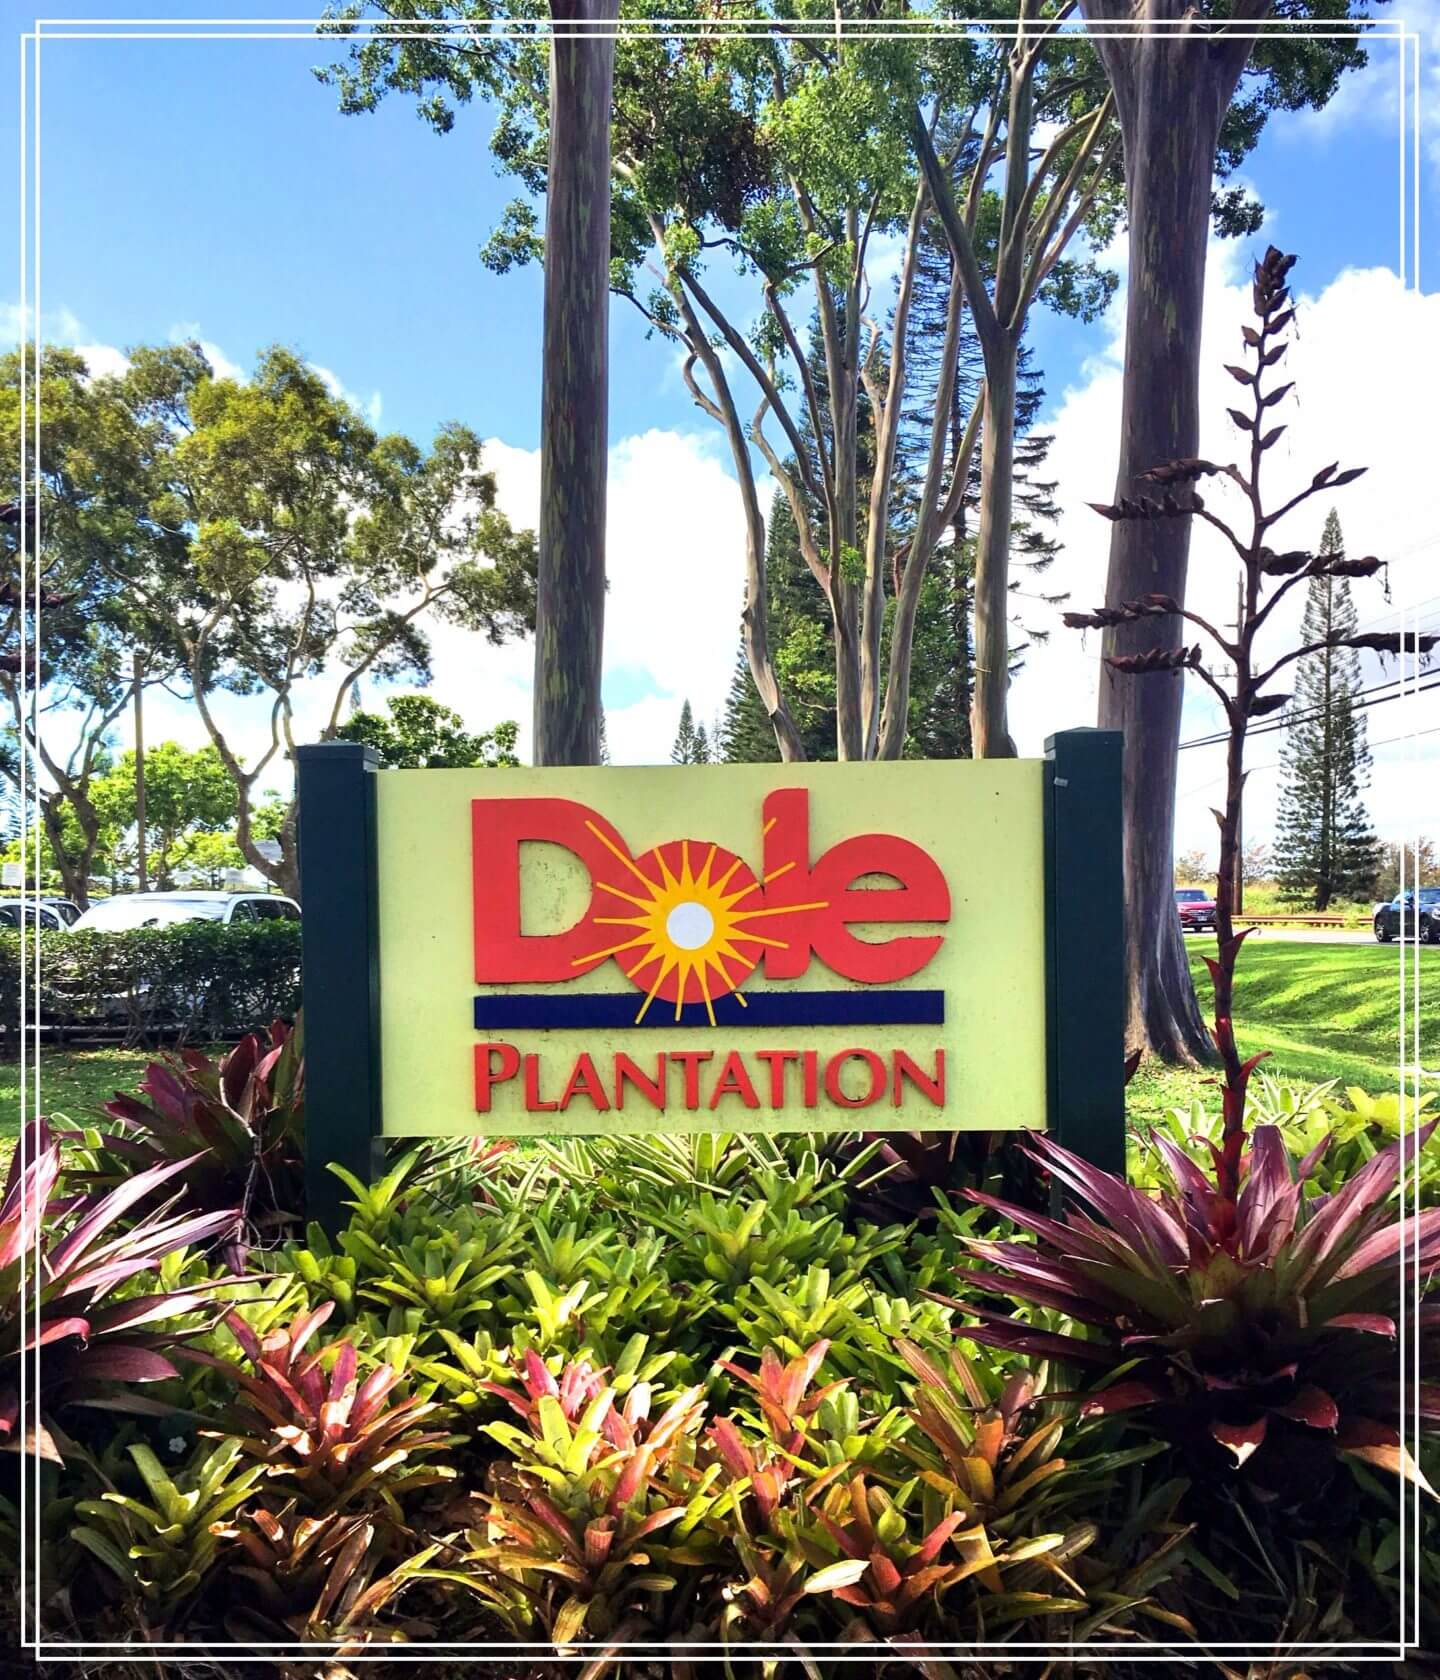 Oahu's Dole Plantation